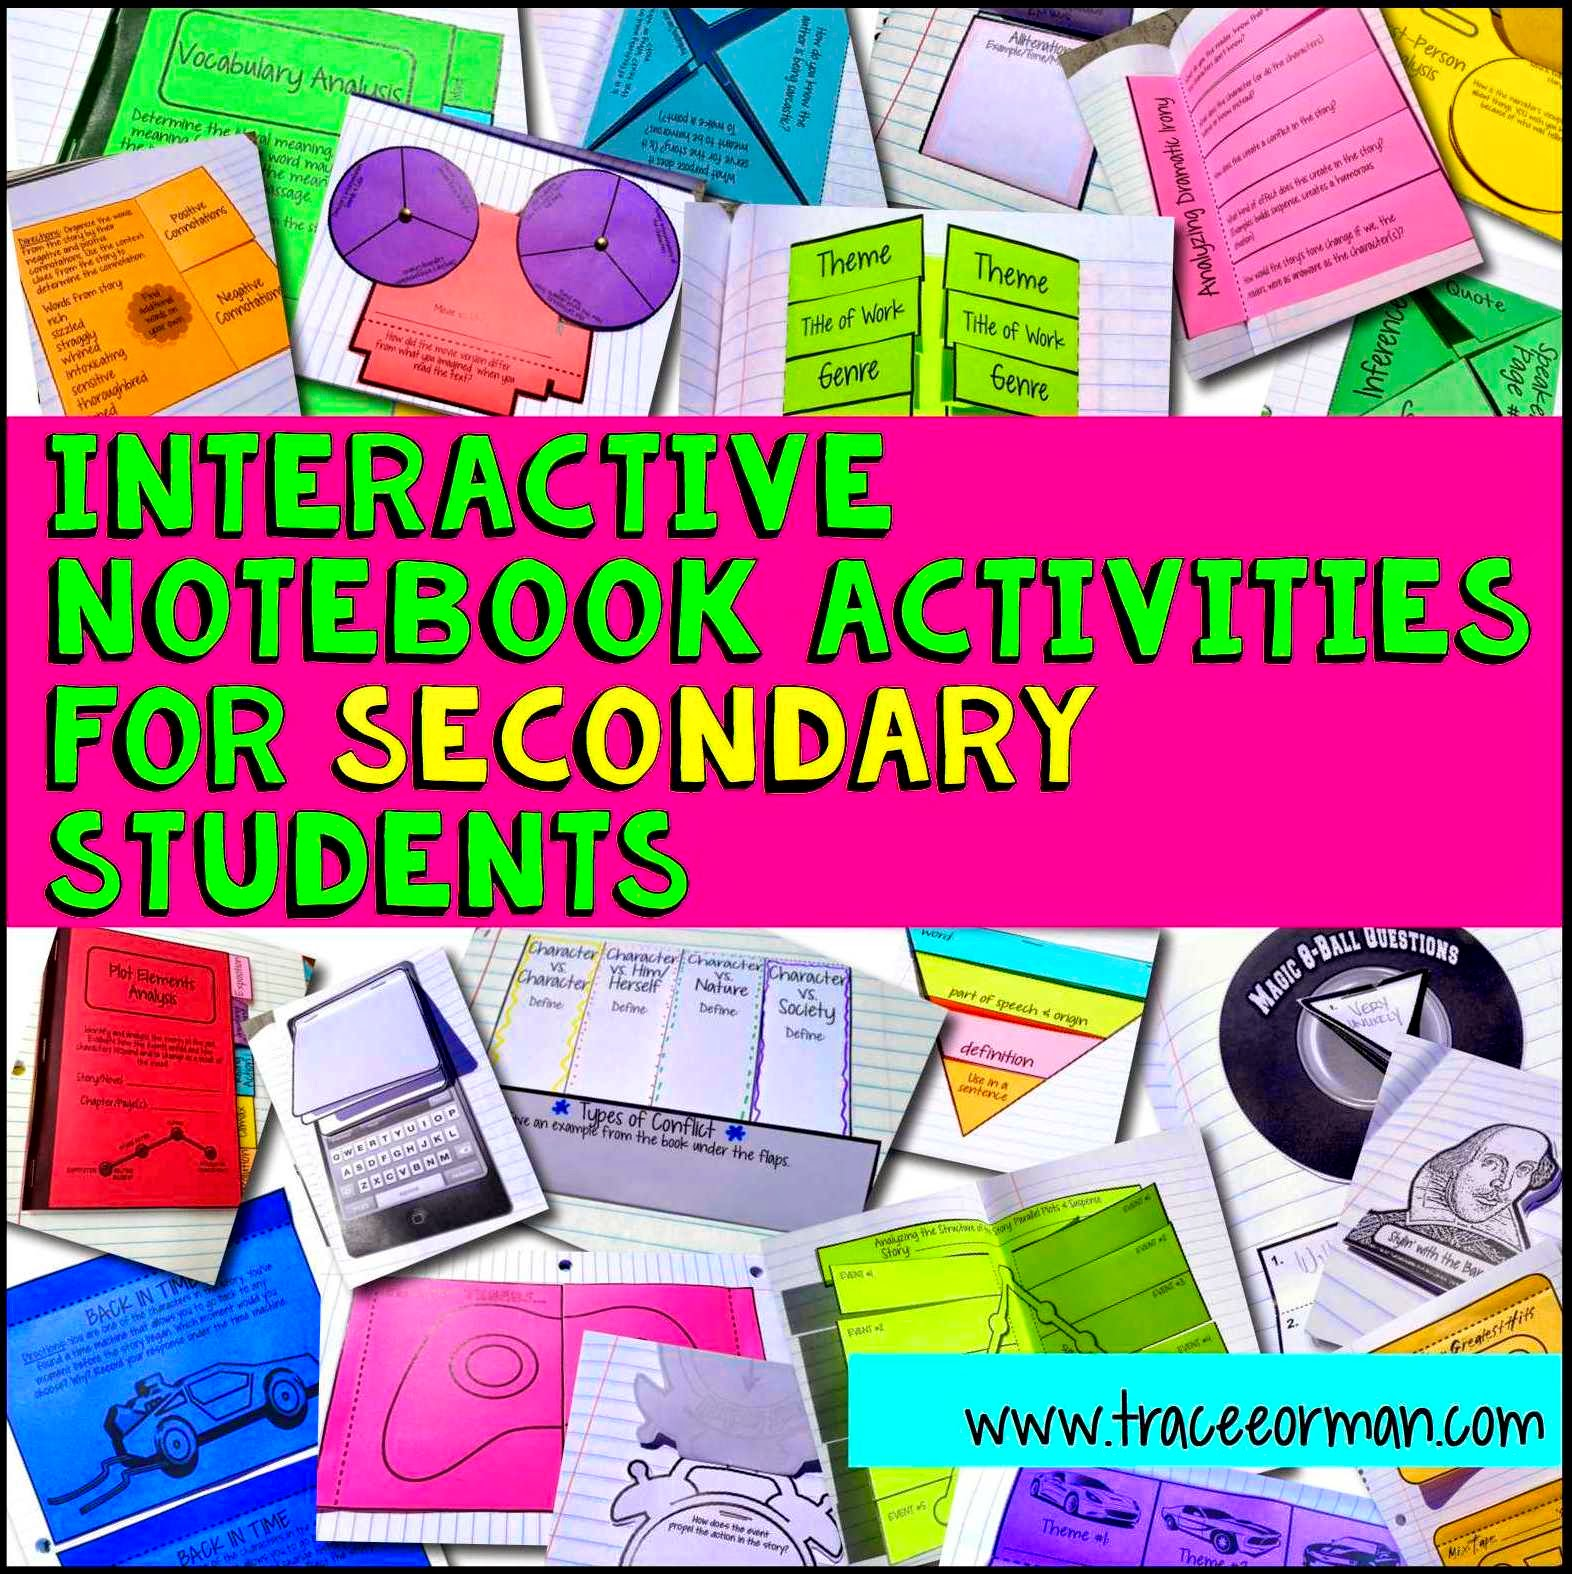 Mrs. Orman's Classroom: Interactive Notebook Examples and Templates